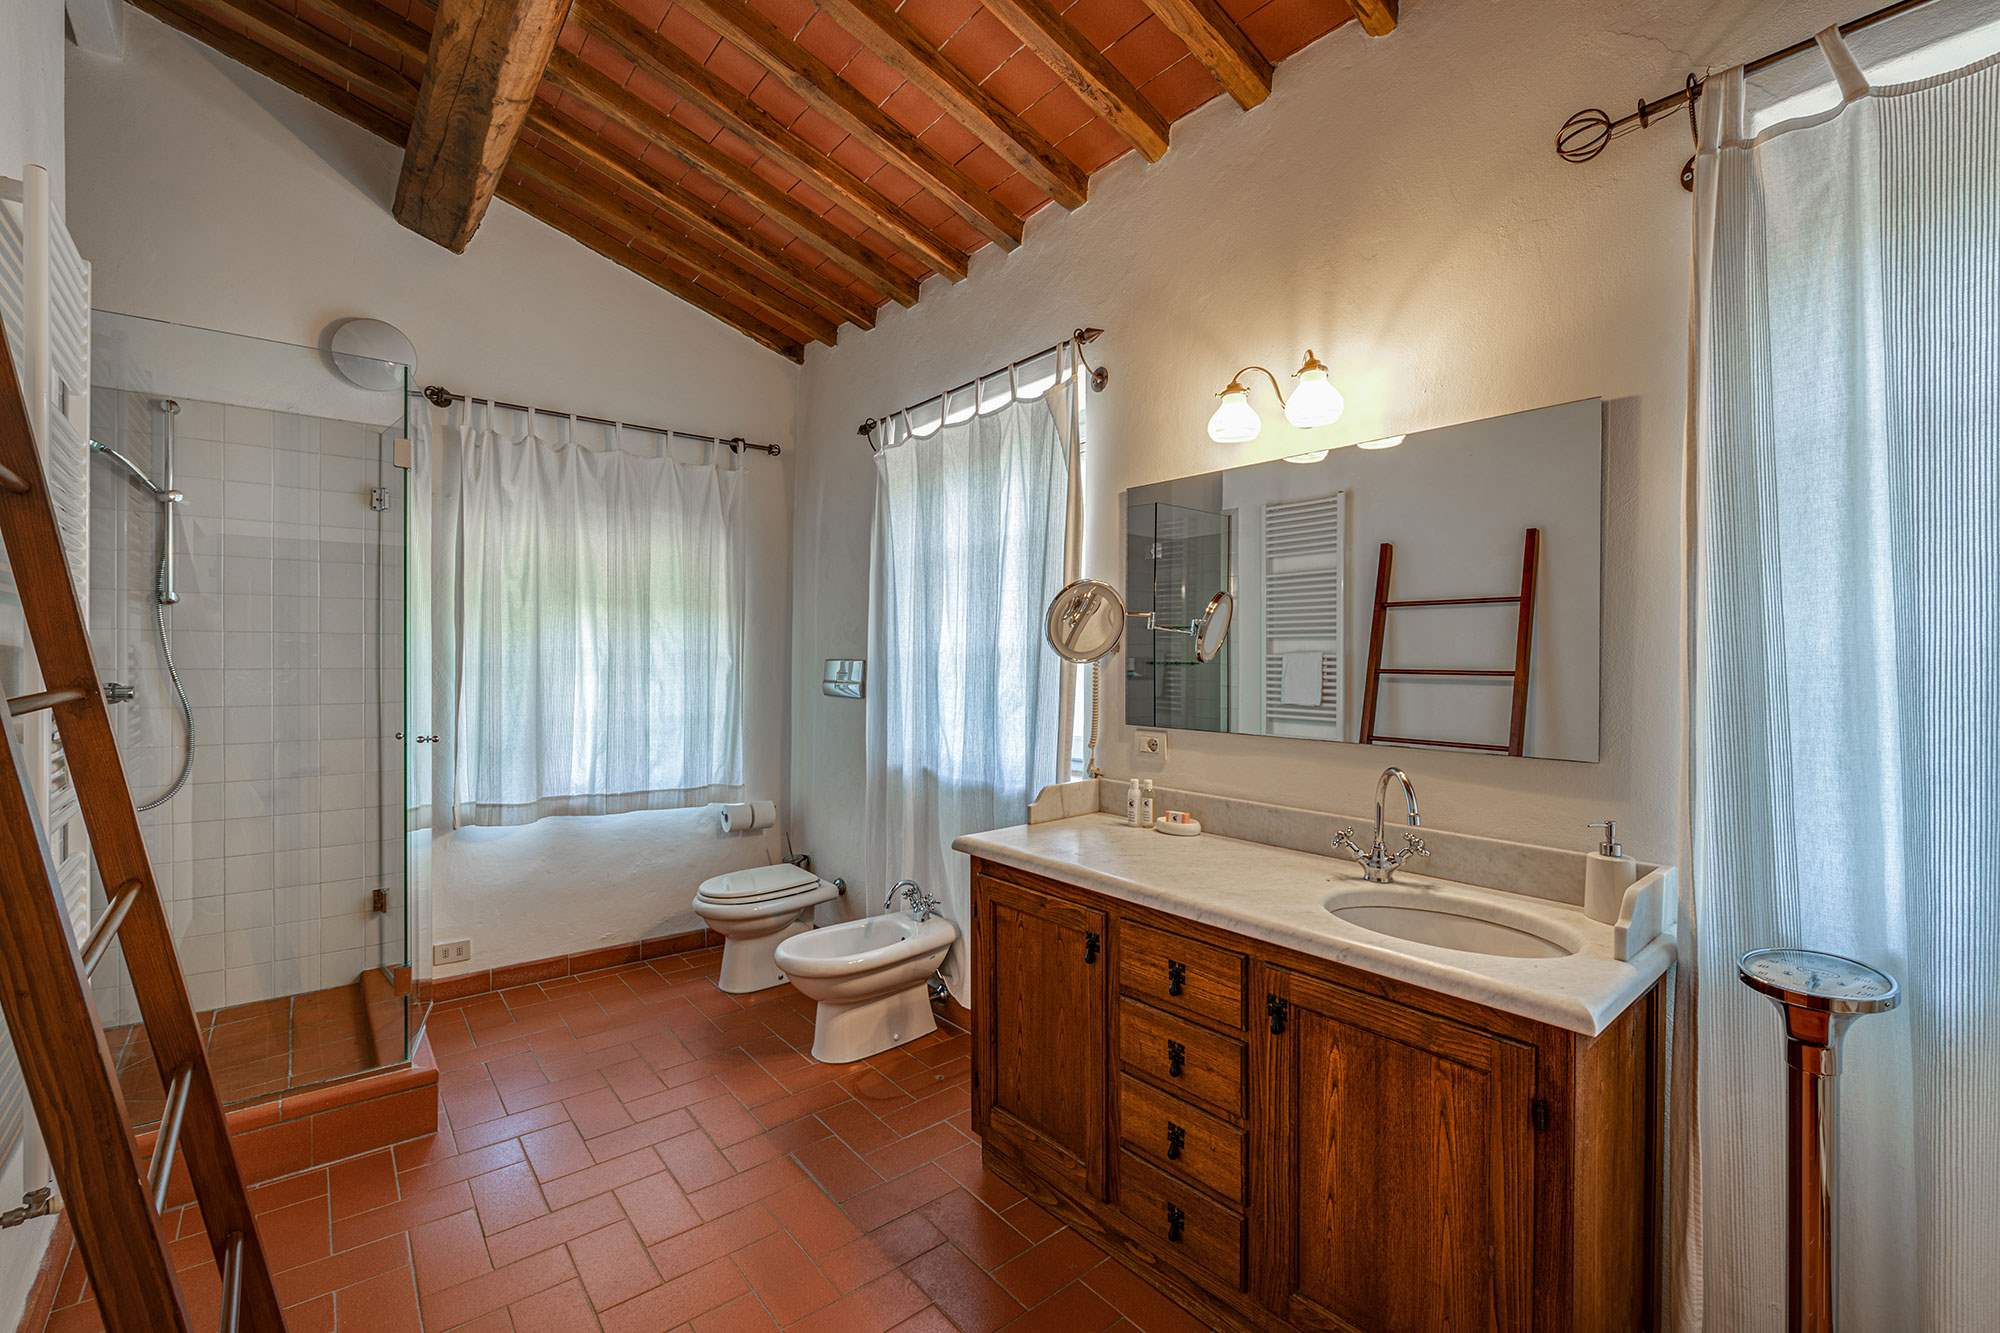 Villa Claudia, 5 Bedroom rate, 5 bedroom villa in Chianti & Countryside, Tuscany Photo #21